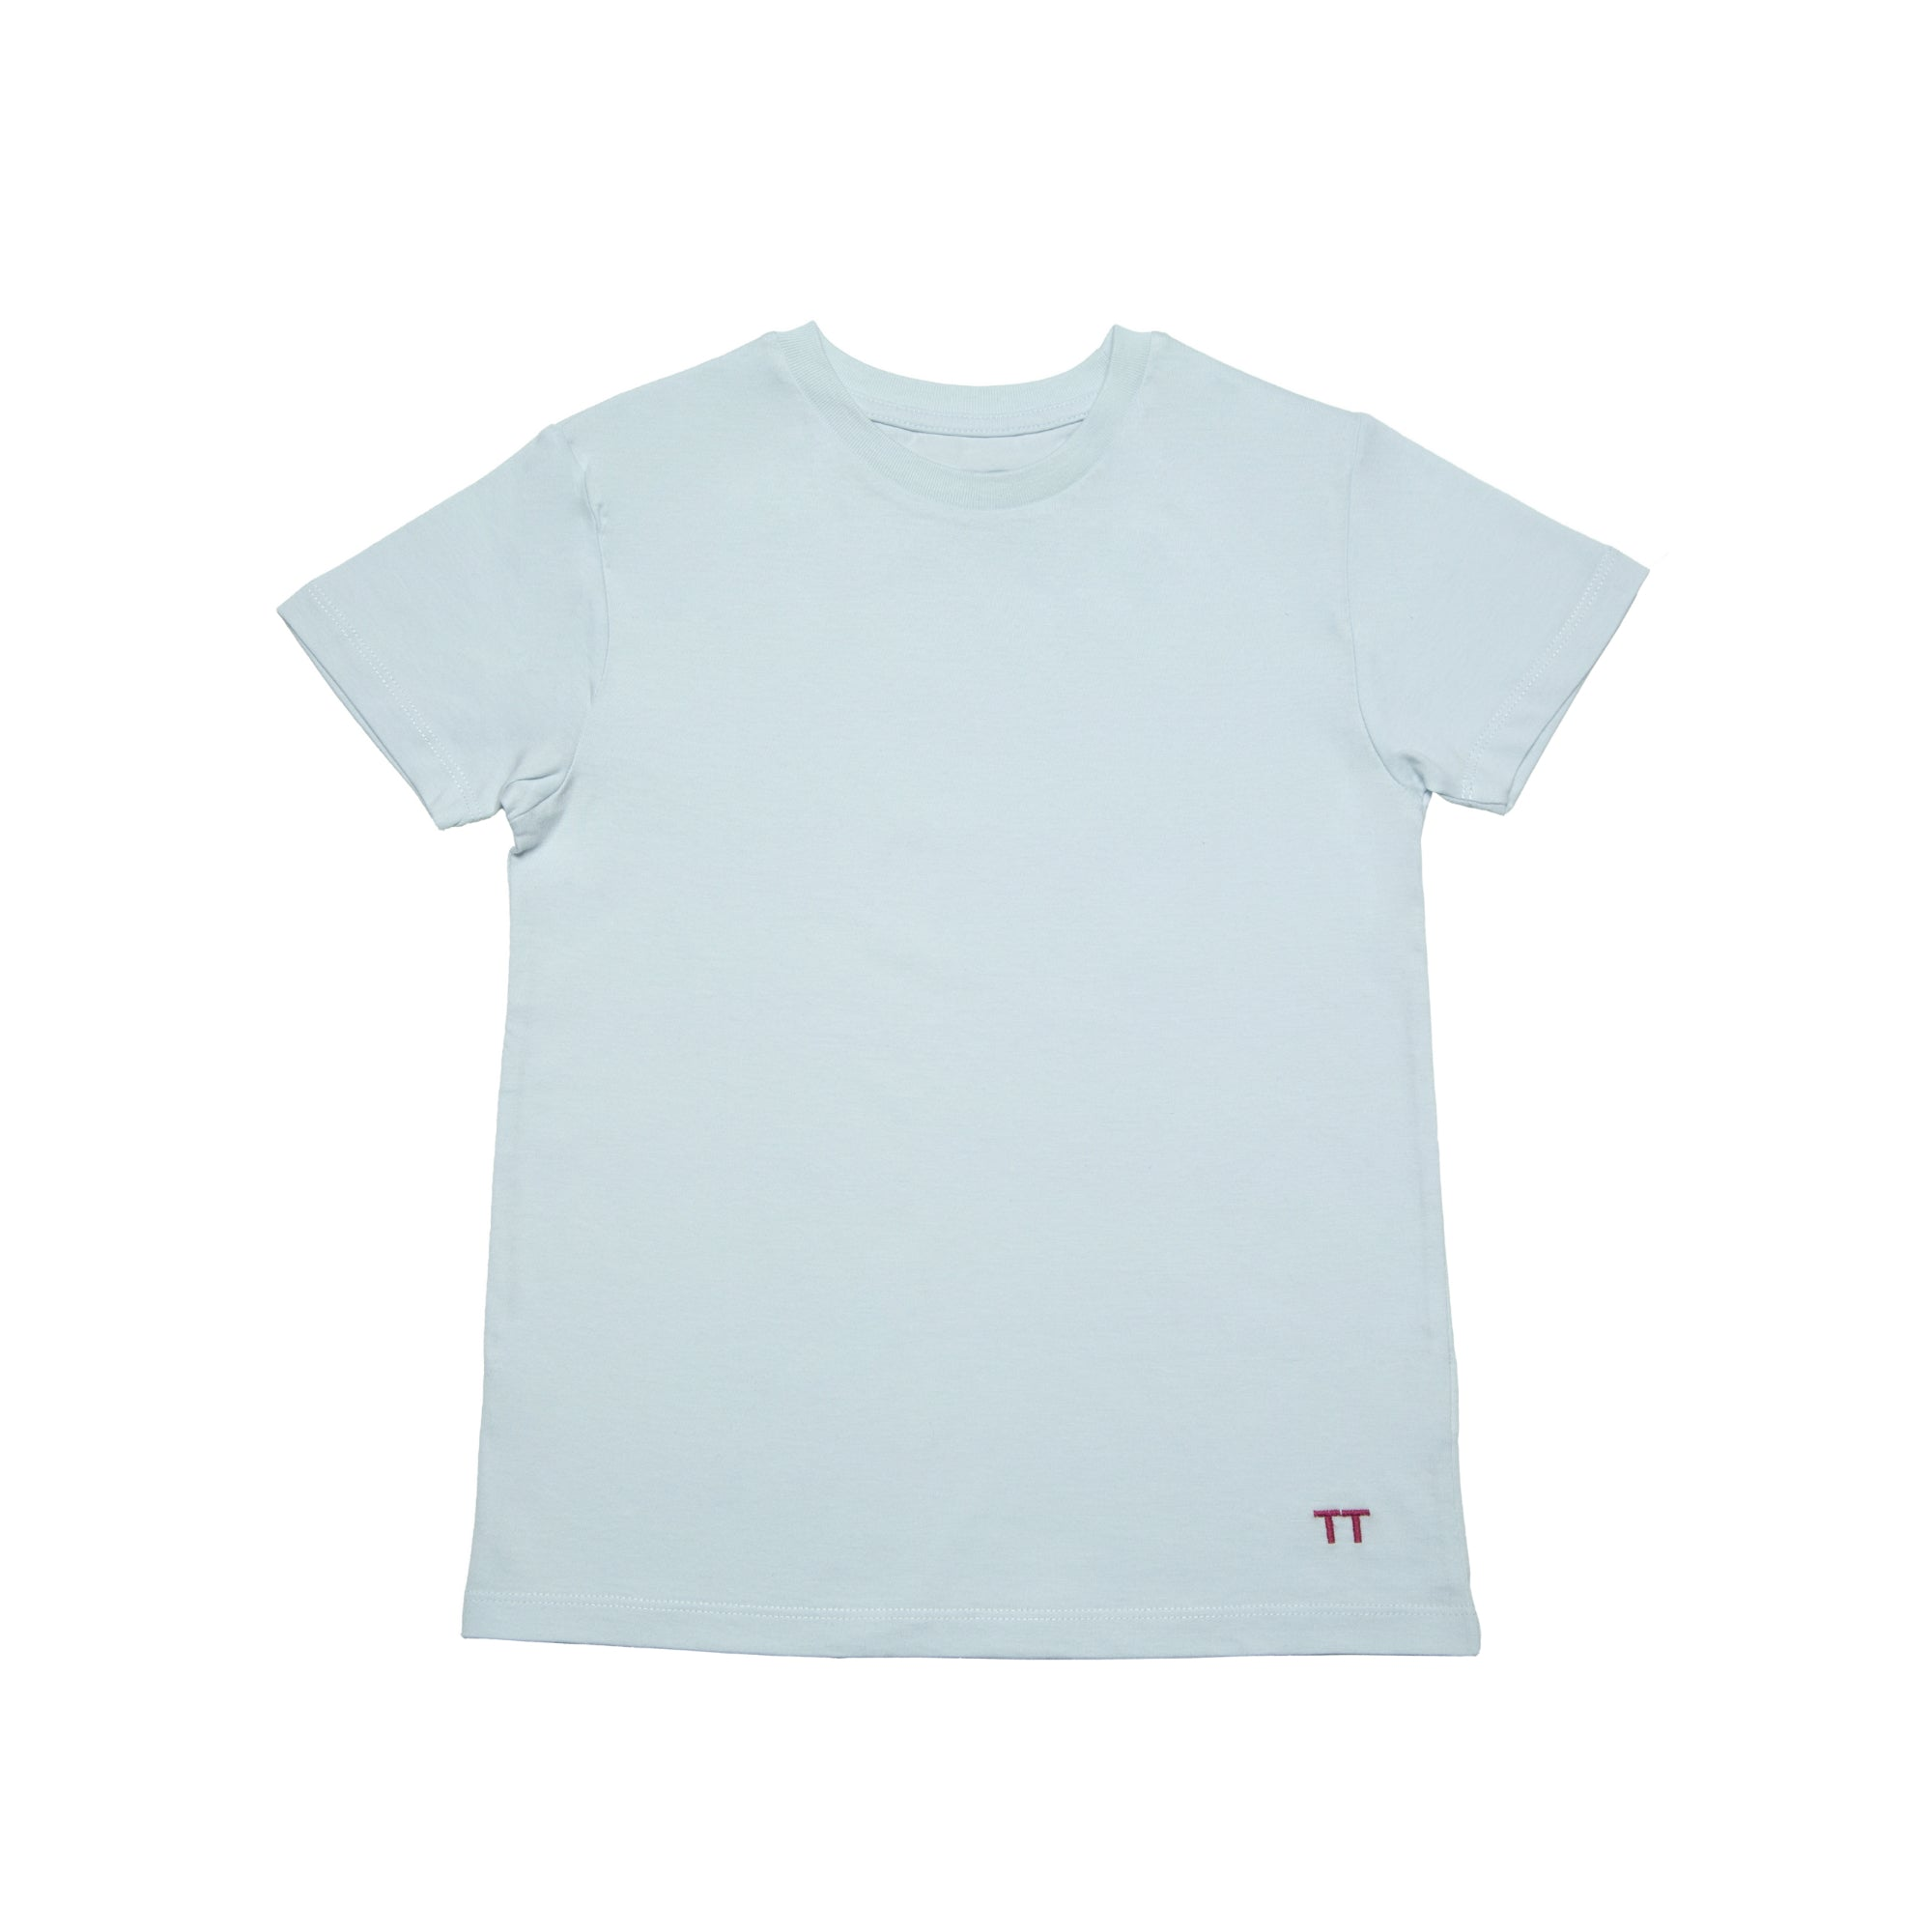 Kids Organic Cotton Tee